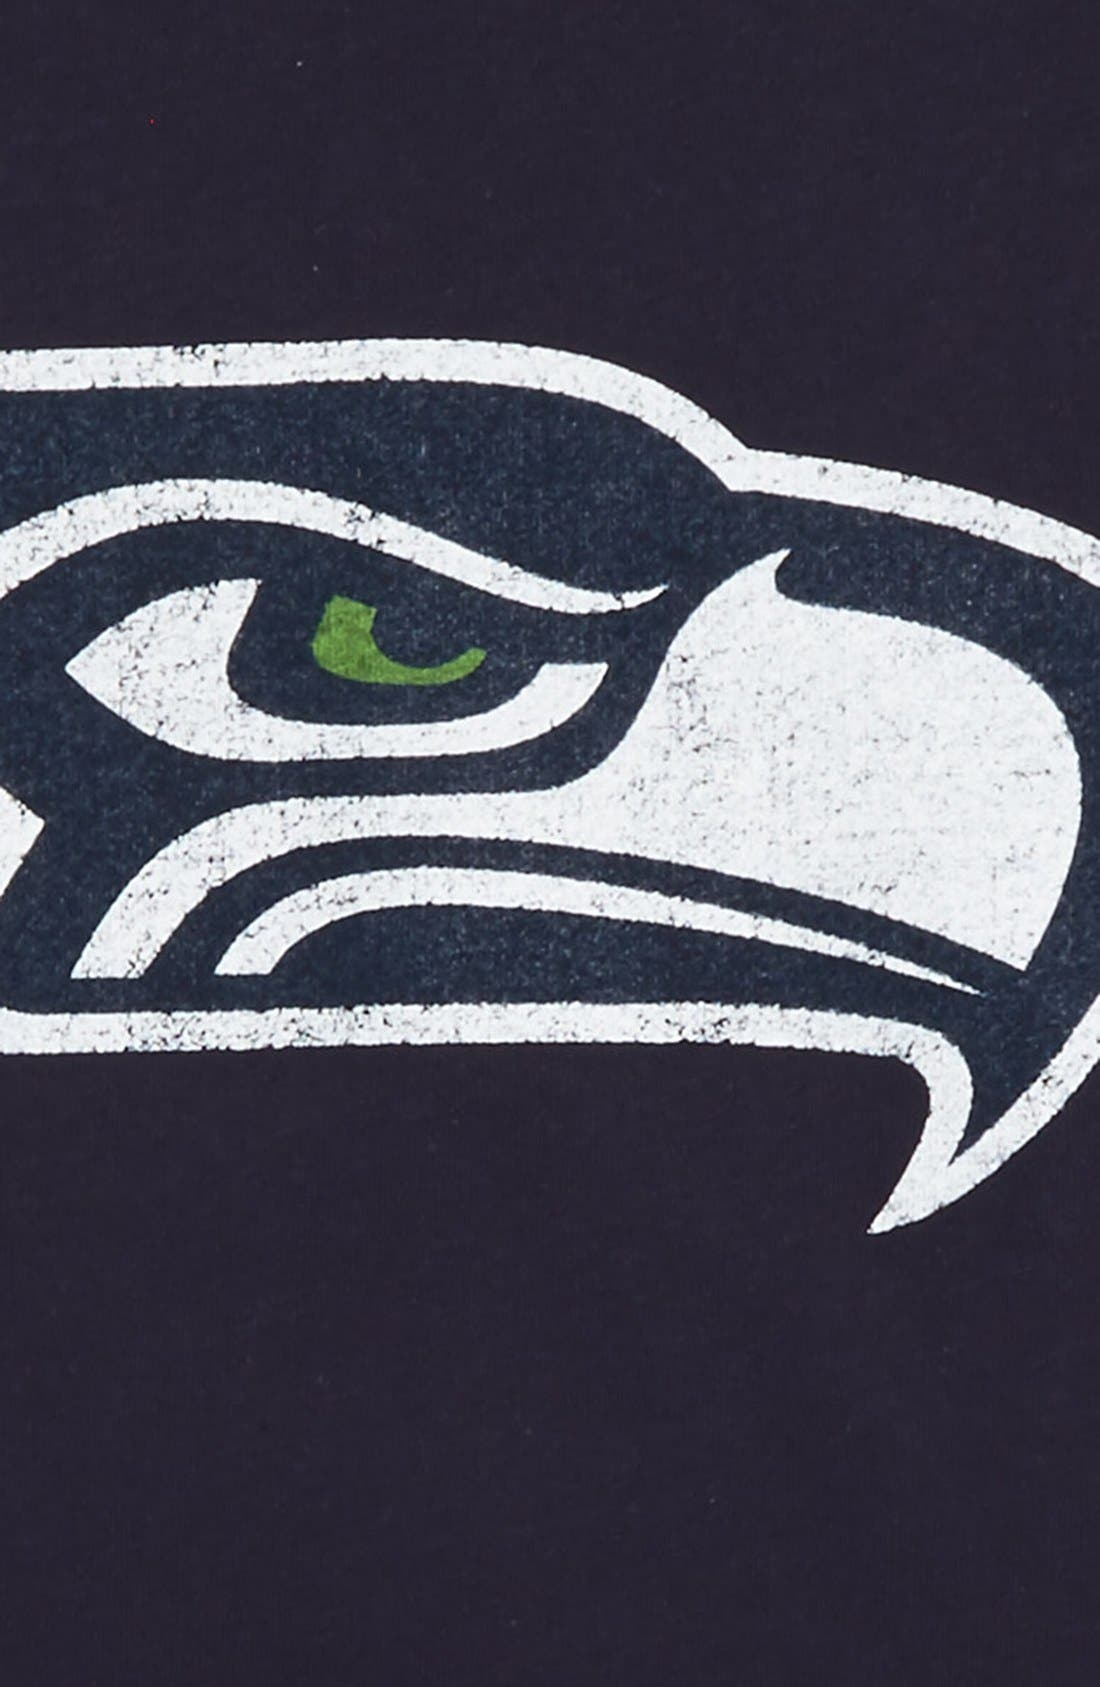 'NFL - Seattle Seahawks' Distressed Logo Graphic T-Shirt,                             Alternate thumbnail 2, color,                             Seahawks